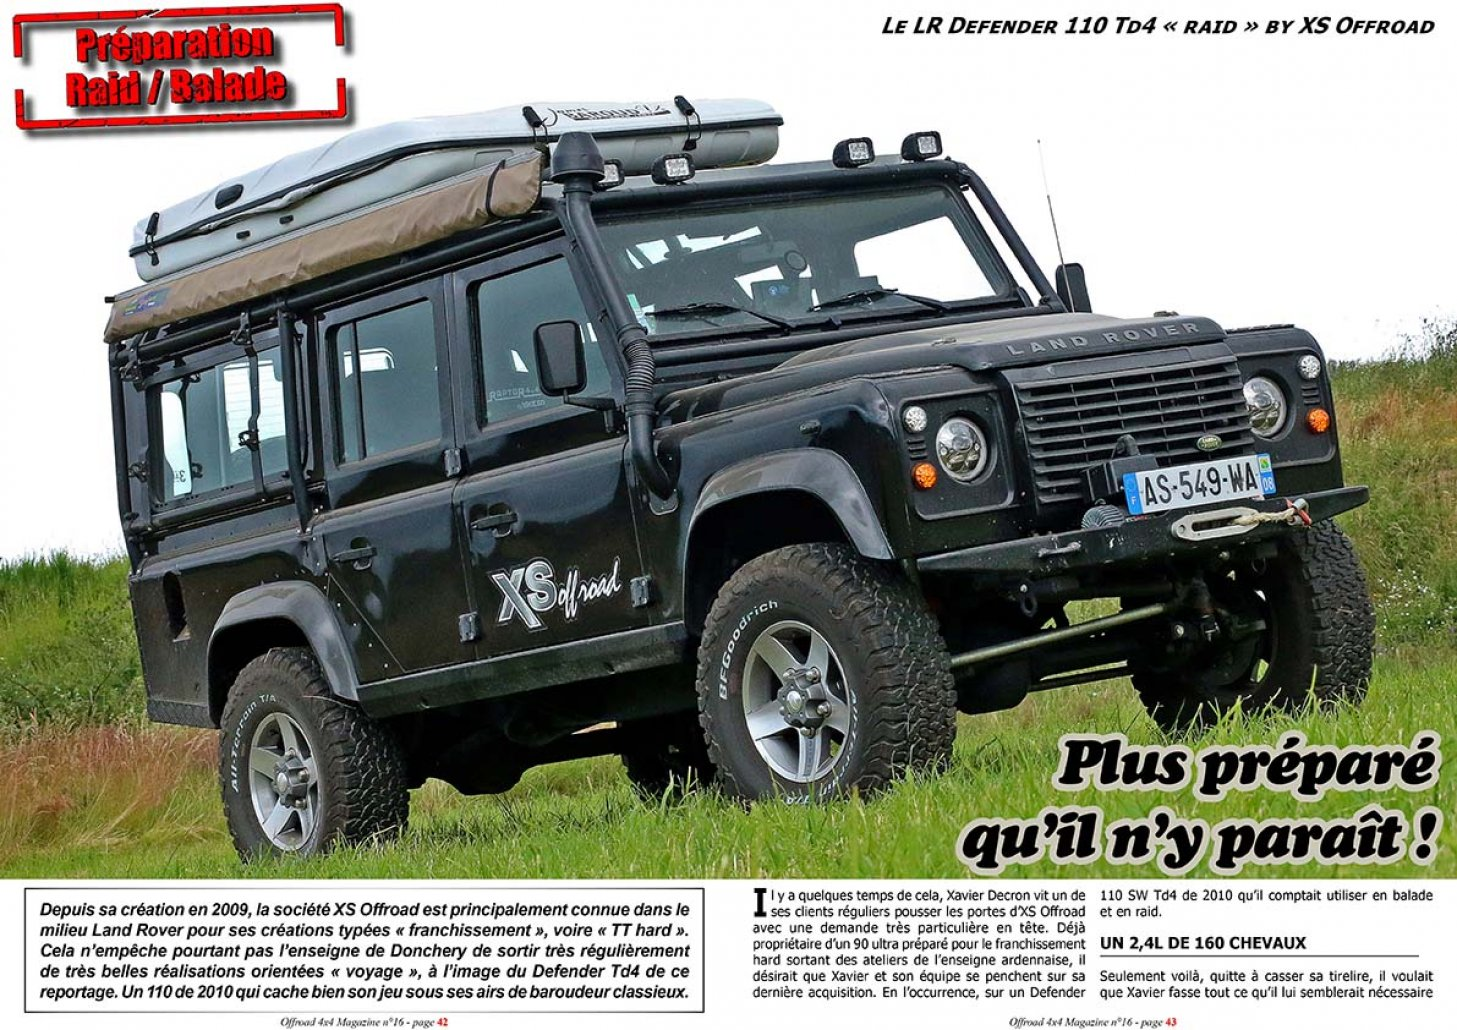 Le Defender 110 Raid by XS Offroad